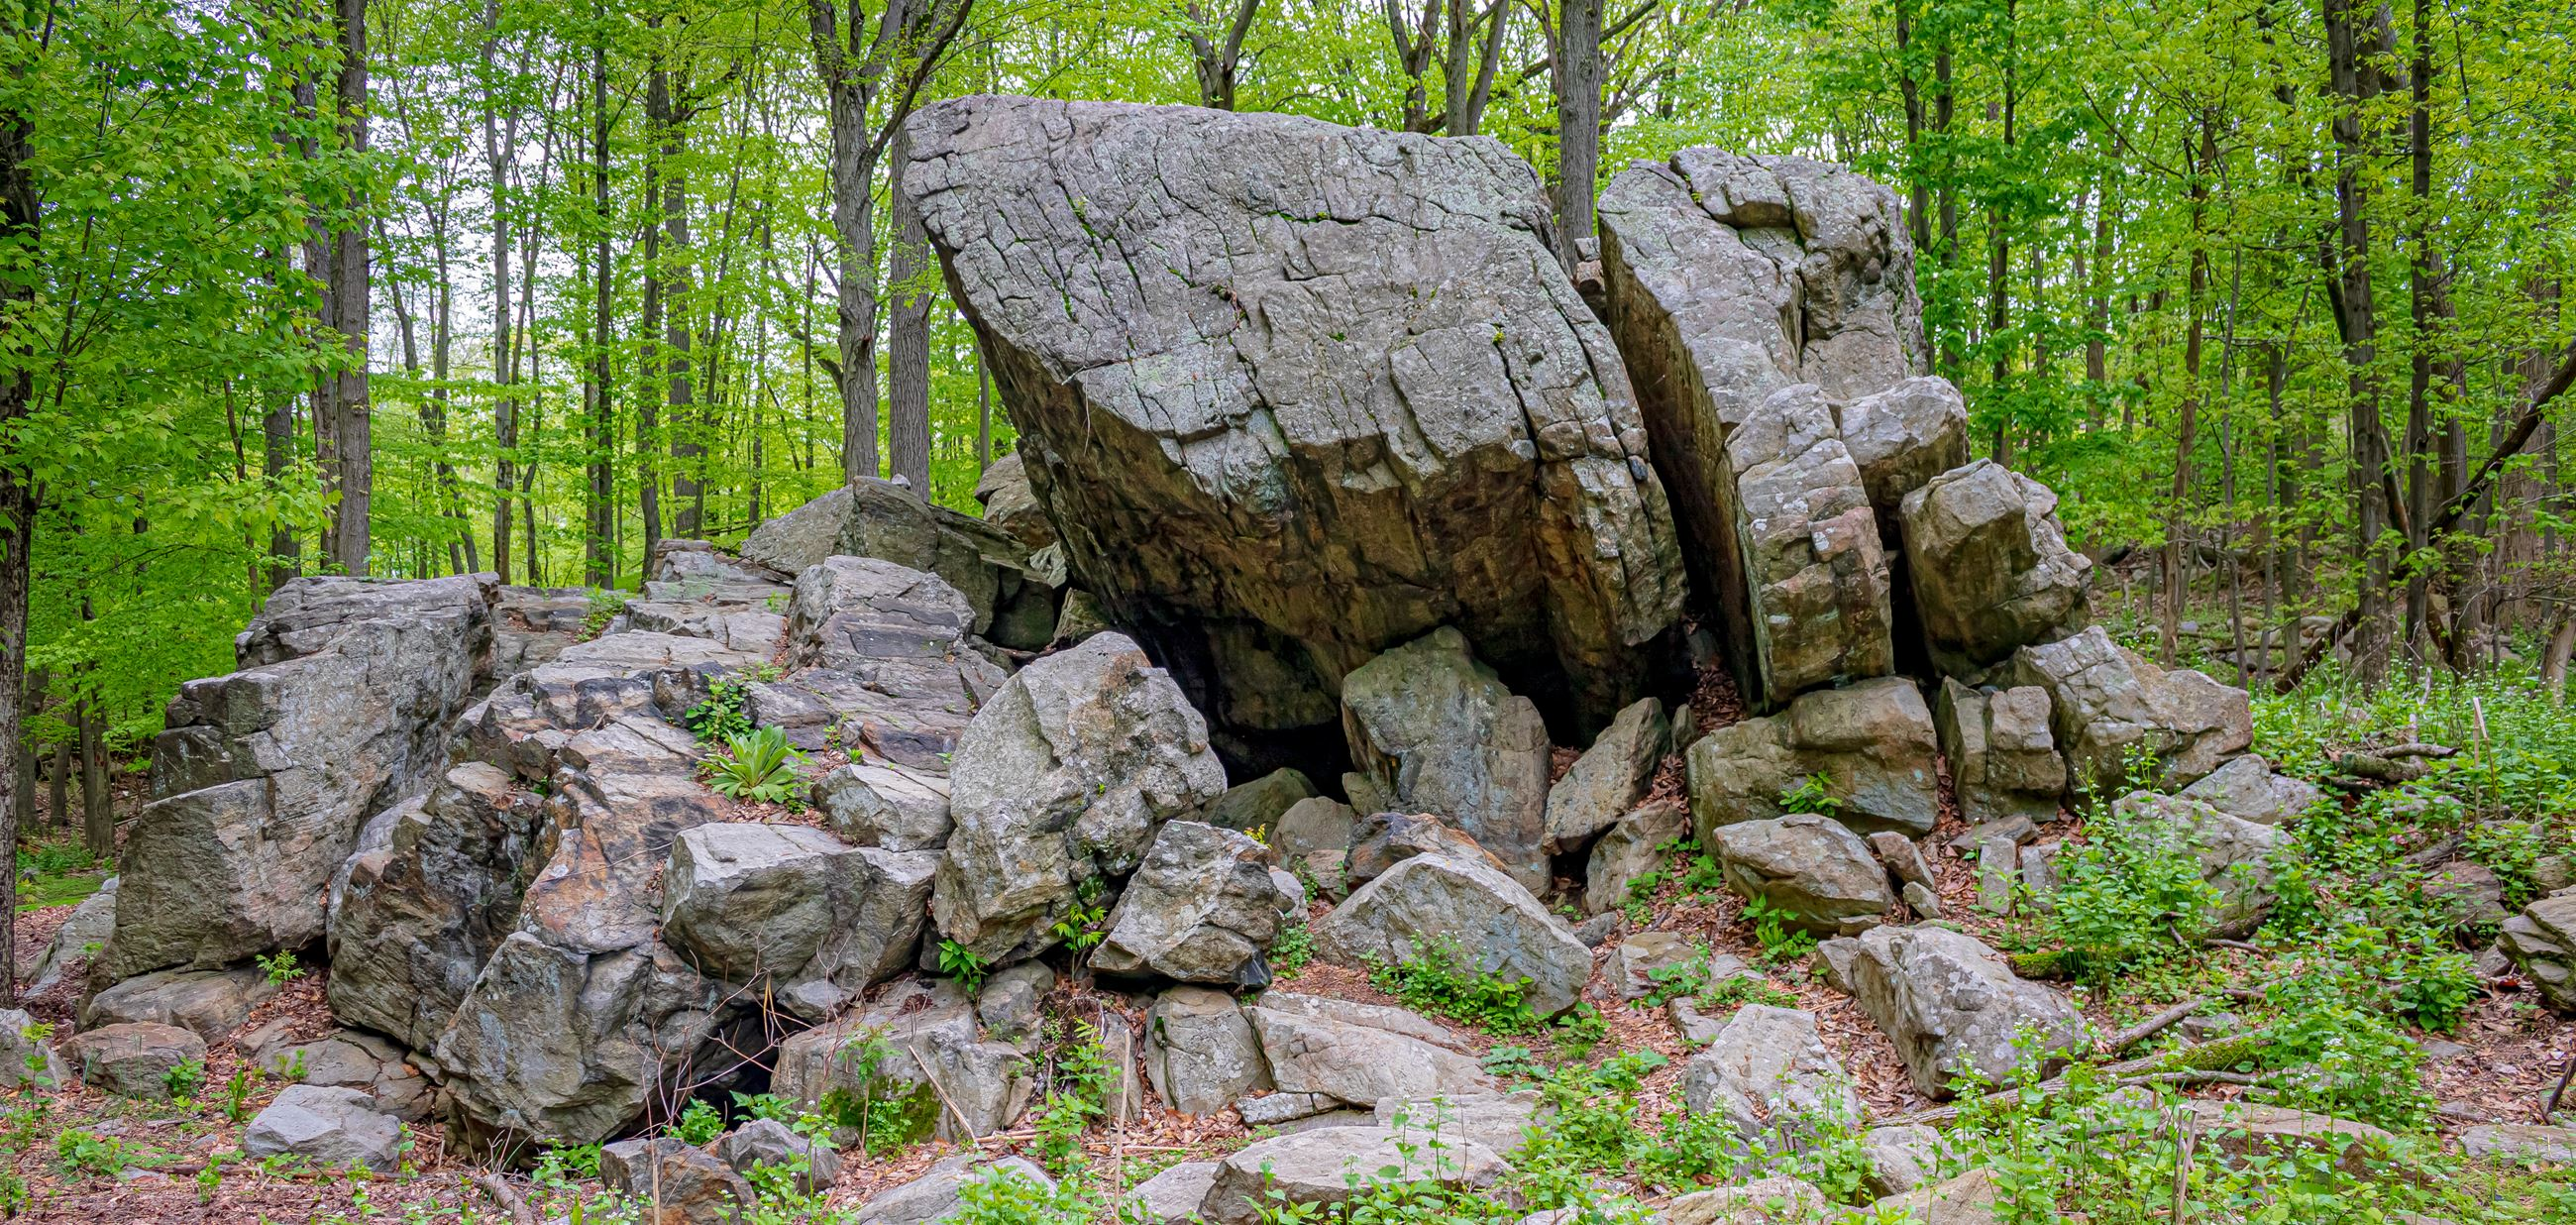 Parsippany Rock Shelter